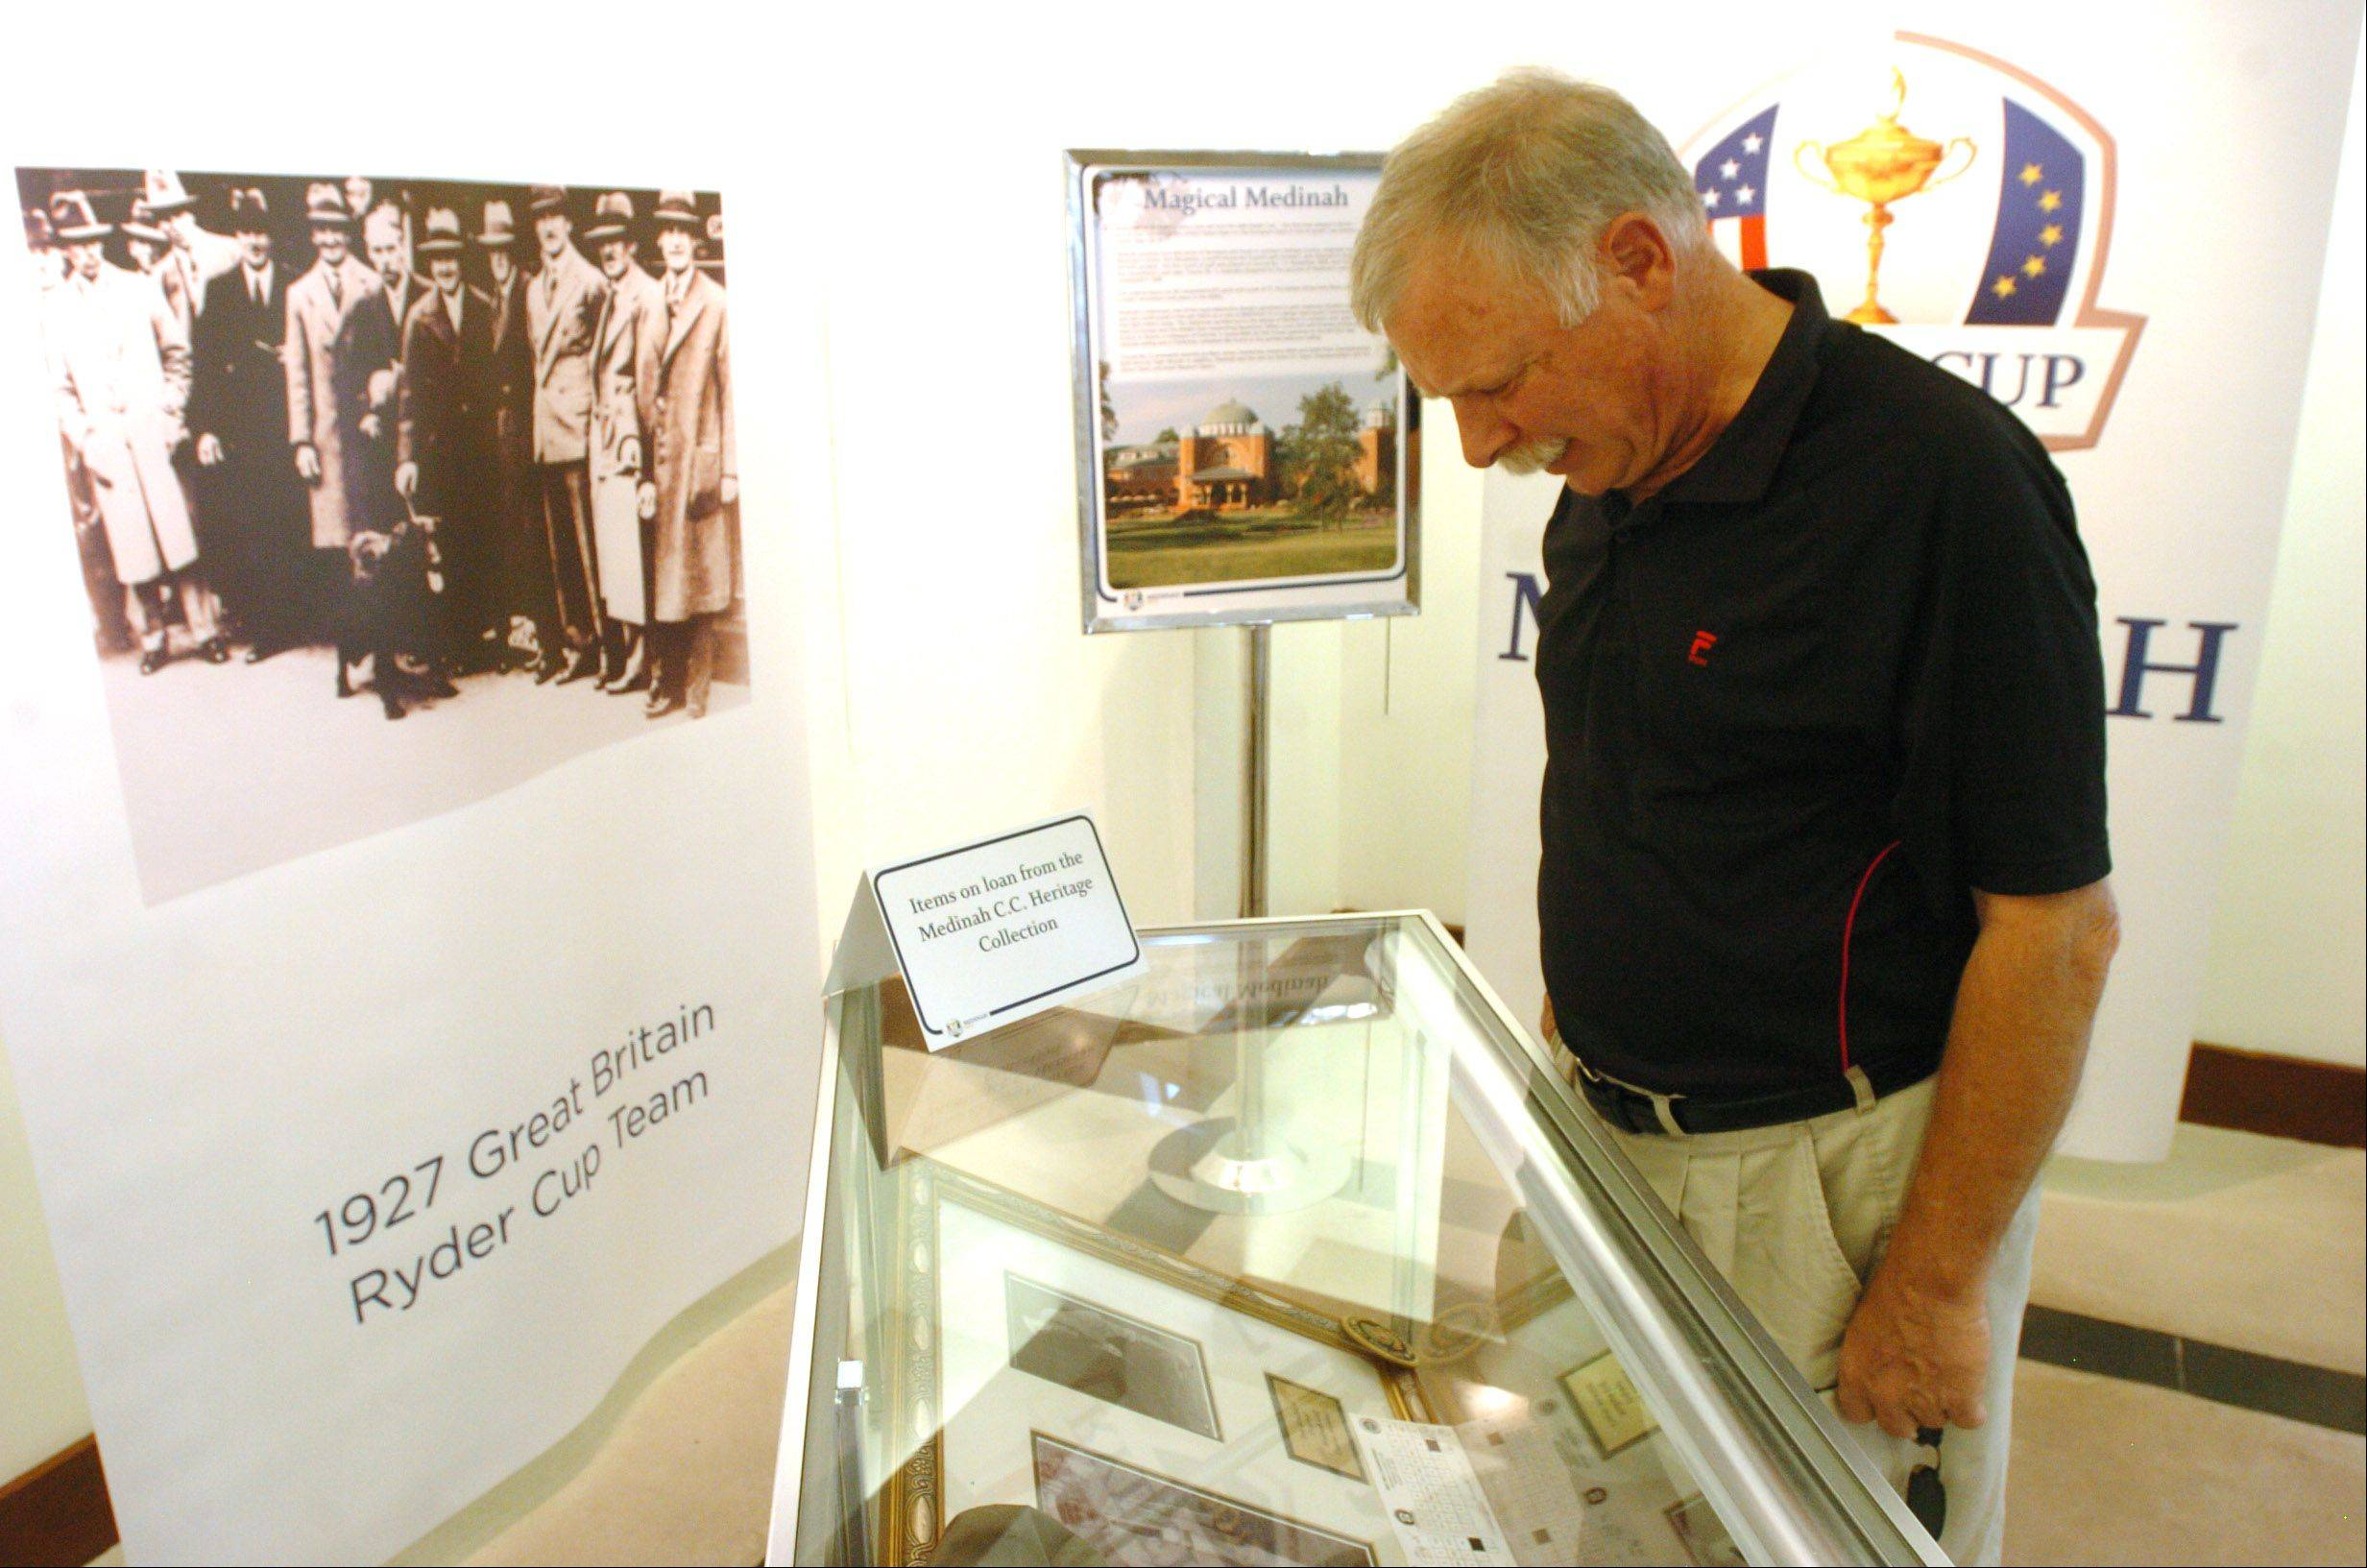 Trent Richards of Roselle checks out the historical data and items on display at the Ryder Cup Exhibit at Oakbrook Center. The free exhibit, which features items from the collections of golf legends and the Ryder Cup, runs through Sept. 30.